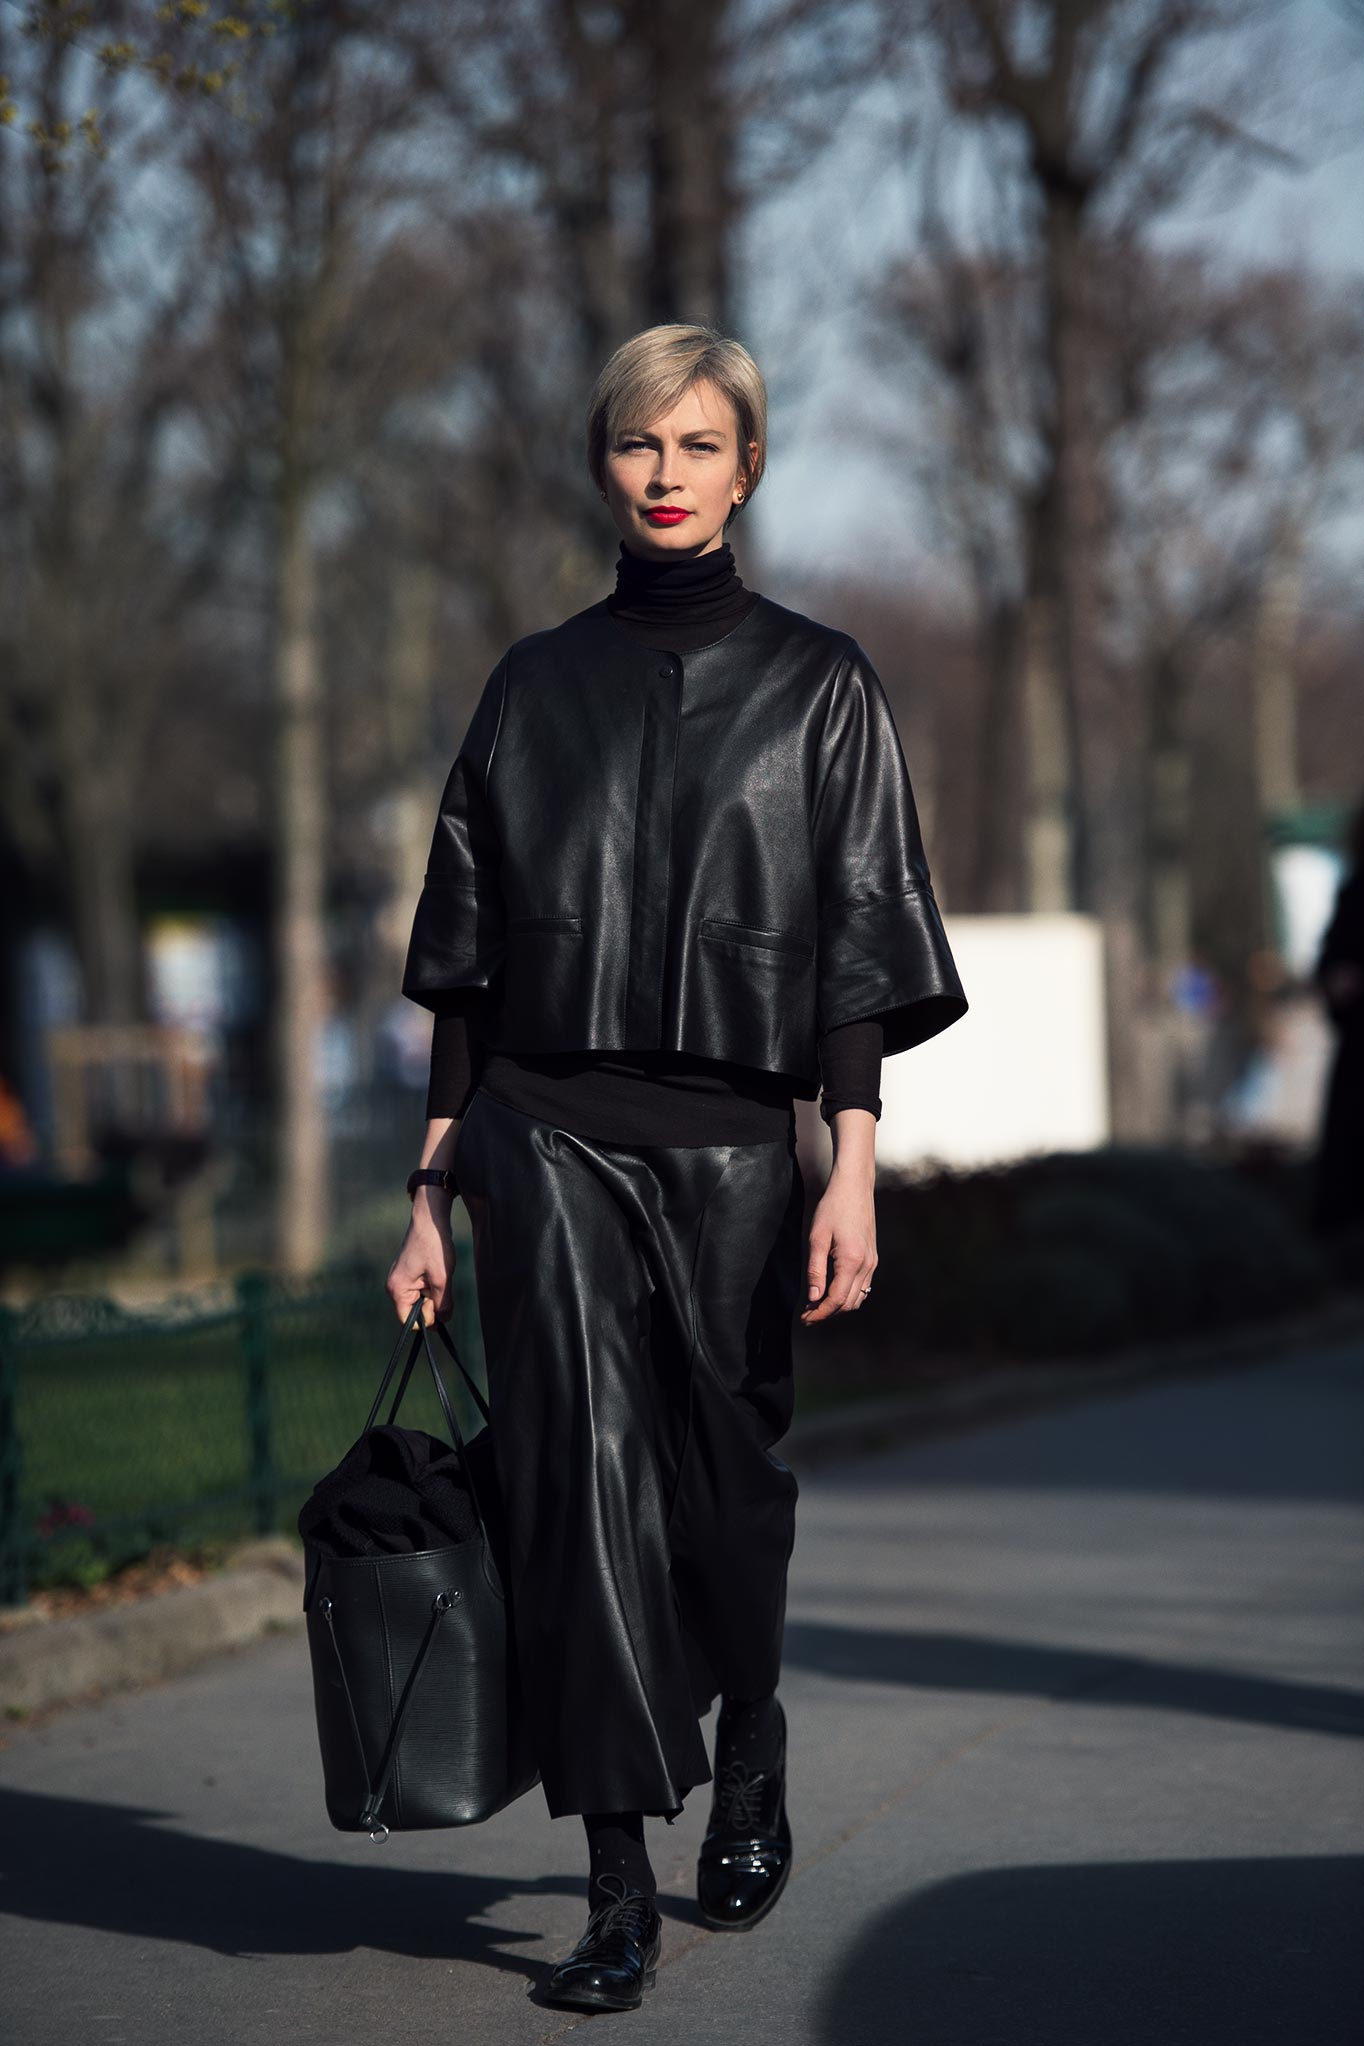 Masha Tsukanova at Paris Fashion Week Fall/Winter 2015